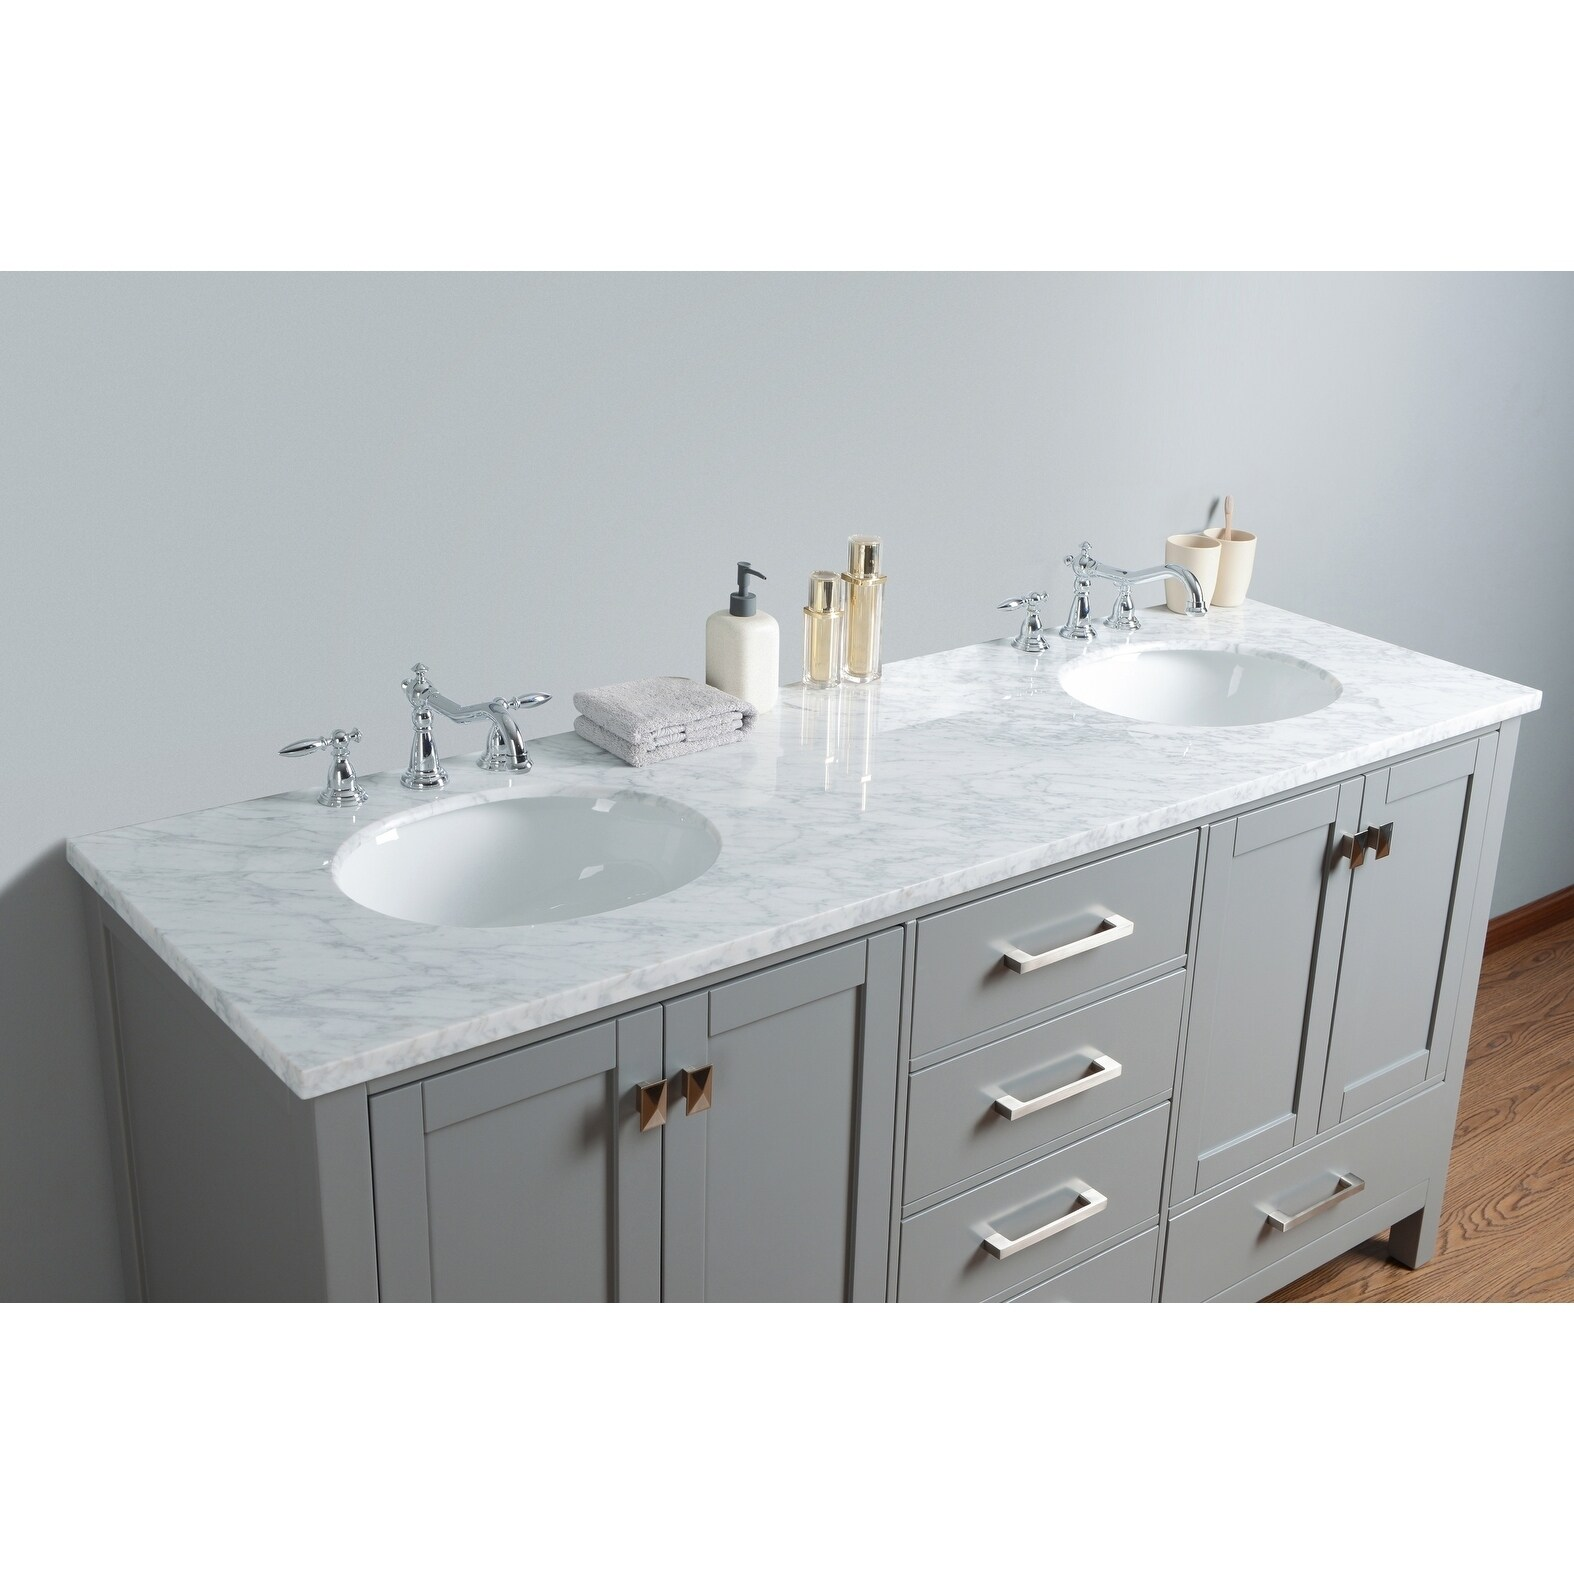 Shop Stufurhome 72 Inch Malibu Grey Double Sink Bathroom Vanity   Free  Shipping Today   Overstock.com   10585142